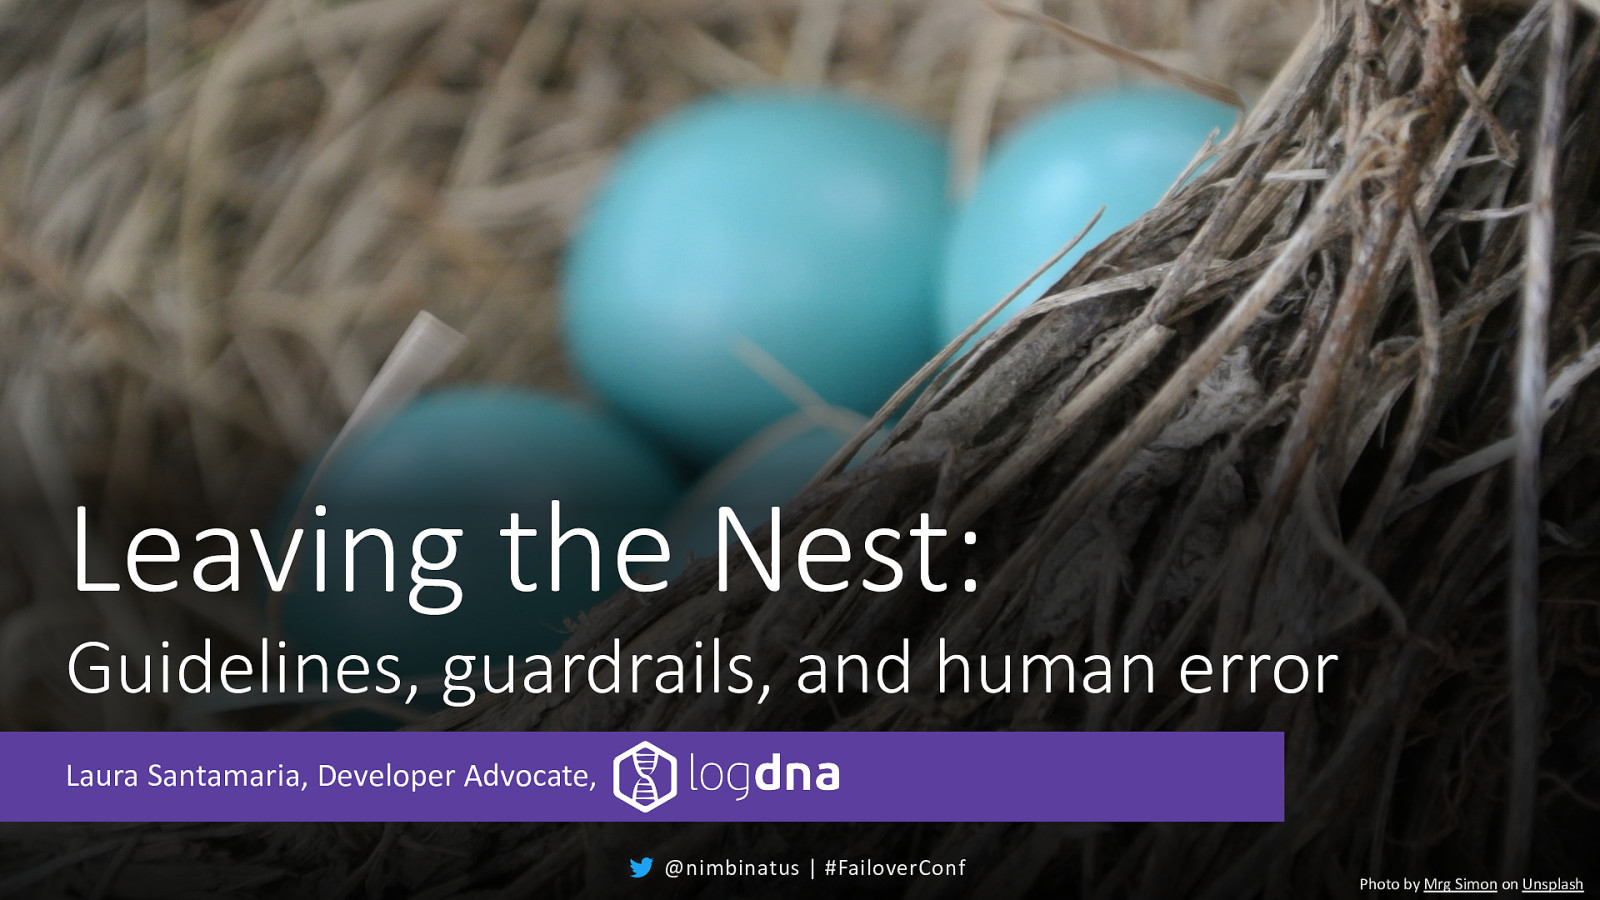 Leaving the Nest: Guidelines, guardrails, and human error